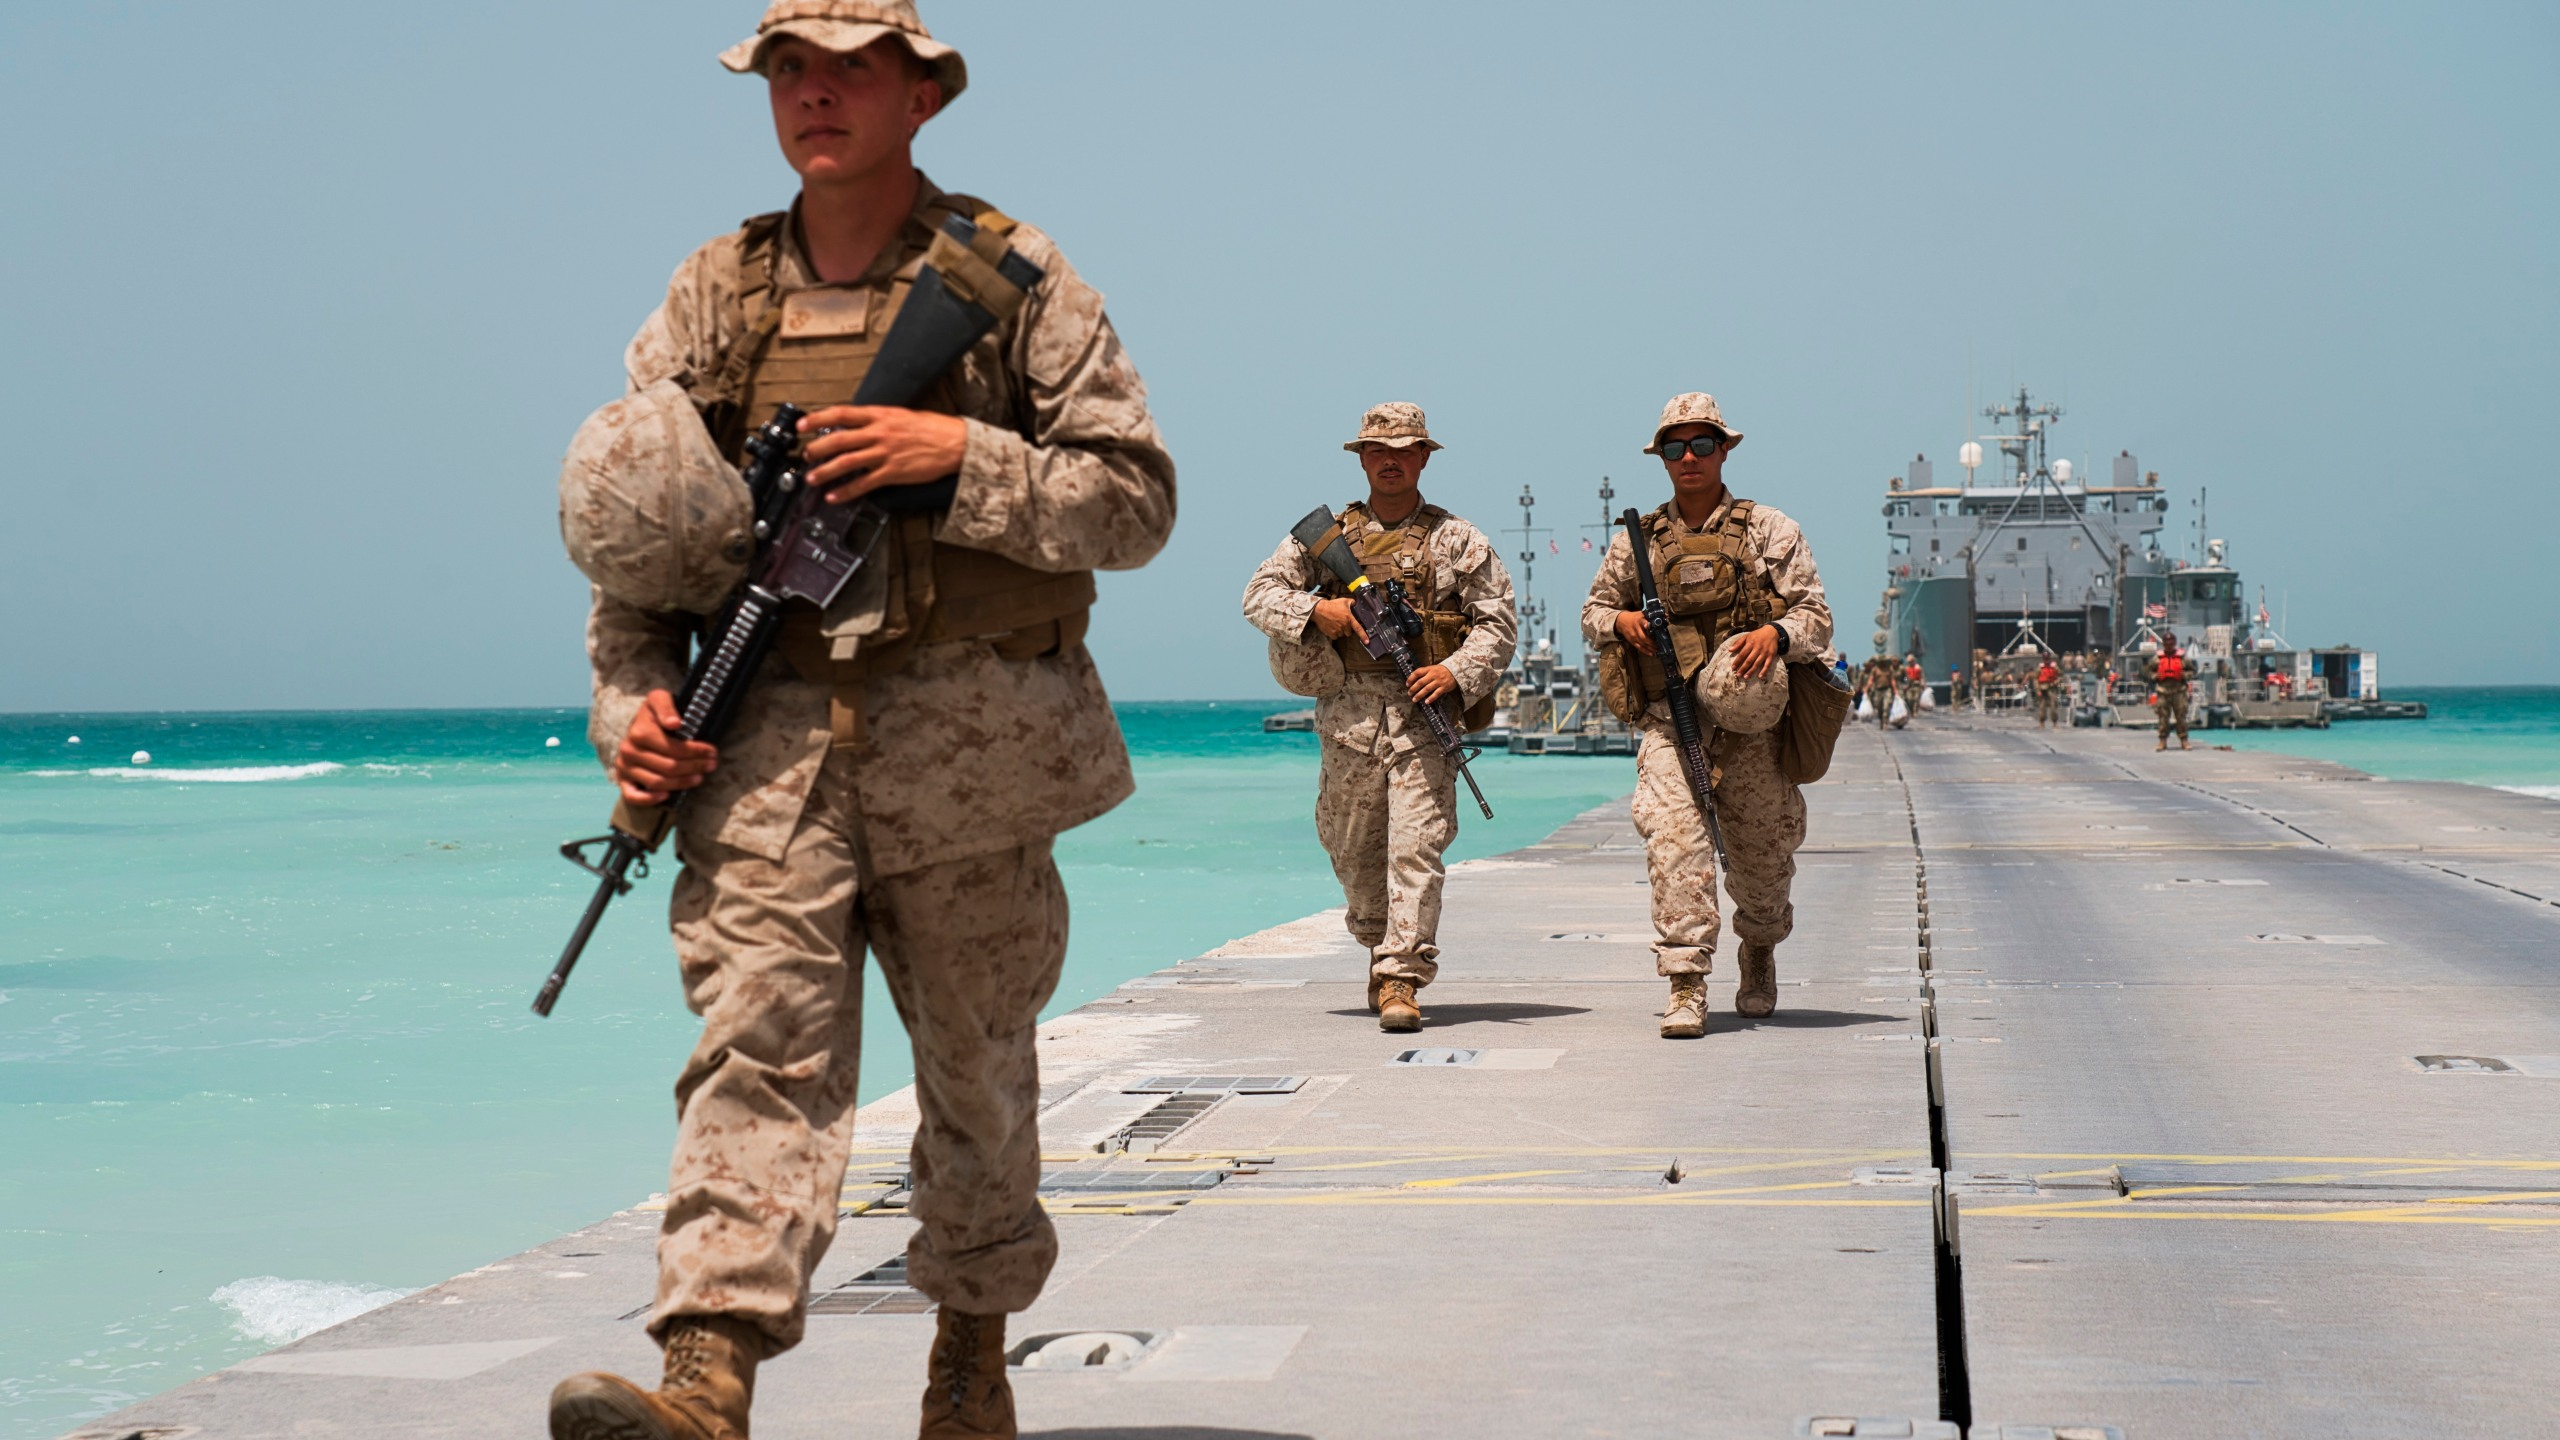 U.S. Marines walk down a removable Trident Pier leading to an American ship docked near an Emirati military base in al-Hamra, United Arab Emirates, Monday, March 23, 2020.The drill on Monday was conducted amid tensions with Iran and despite the global new coronavirus pandemic. (AP Photo/Jon Gambrell)